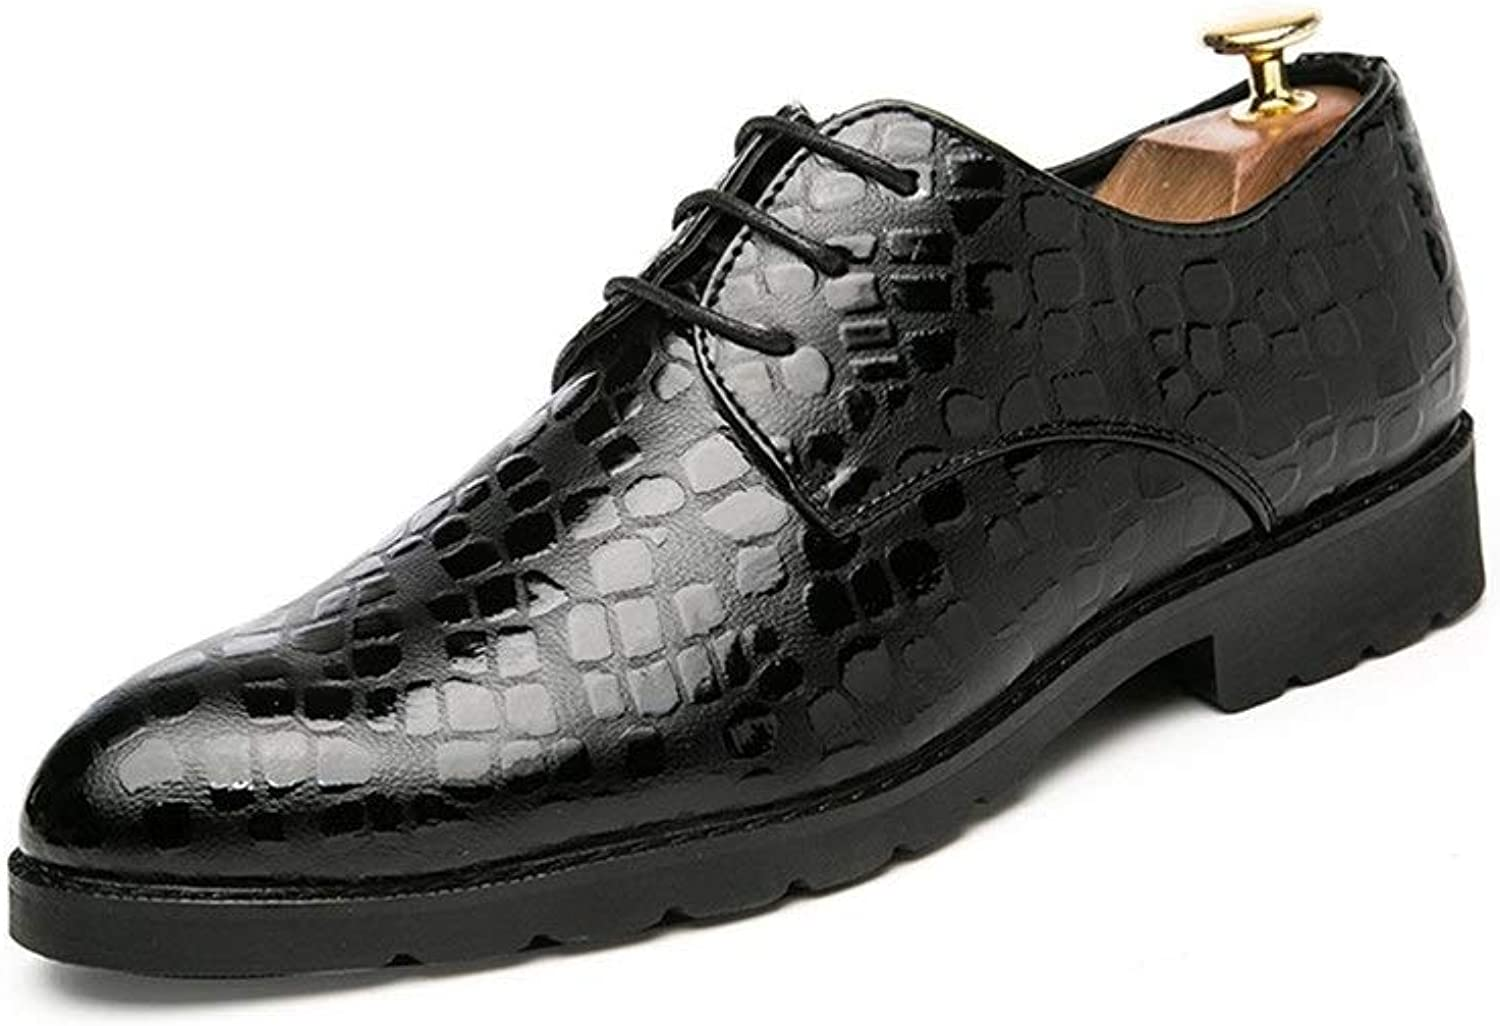 Z.L.F shoes Men's Business Modern Oxford Casual Pointy Thick Crocodile Patent Leather Formal shoes Leather shoes